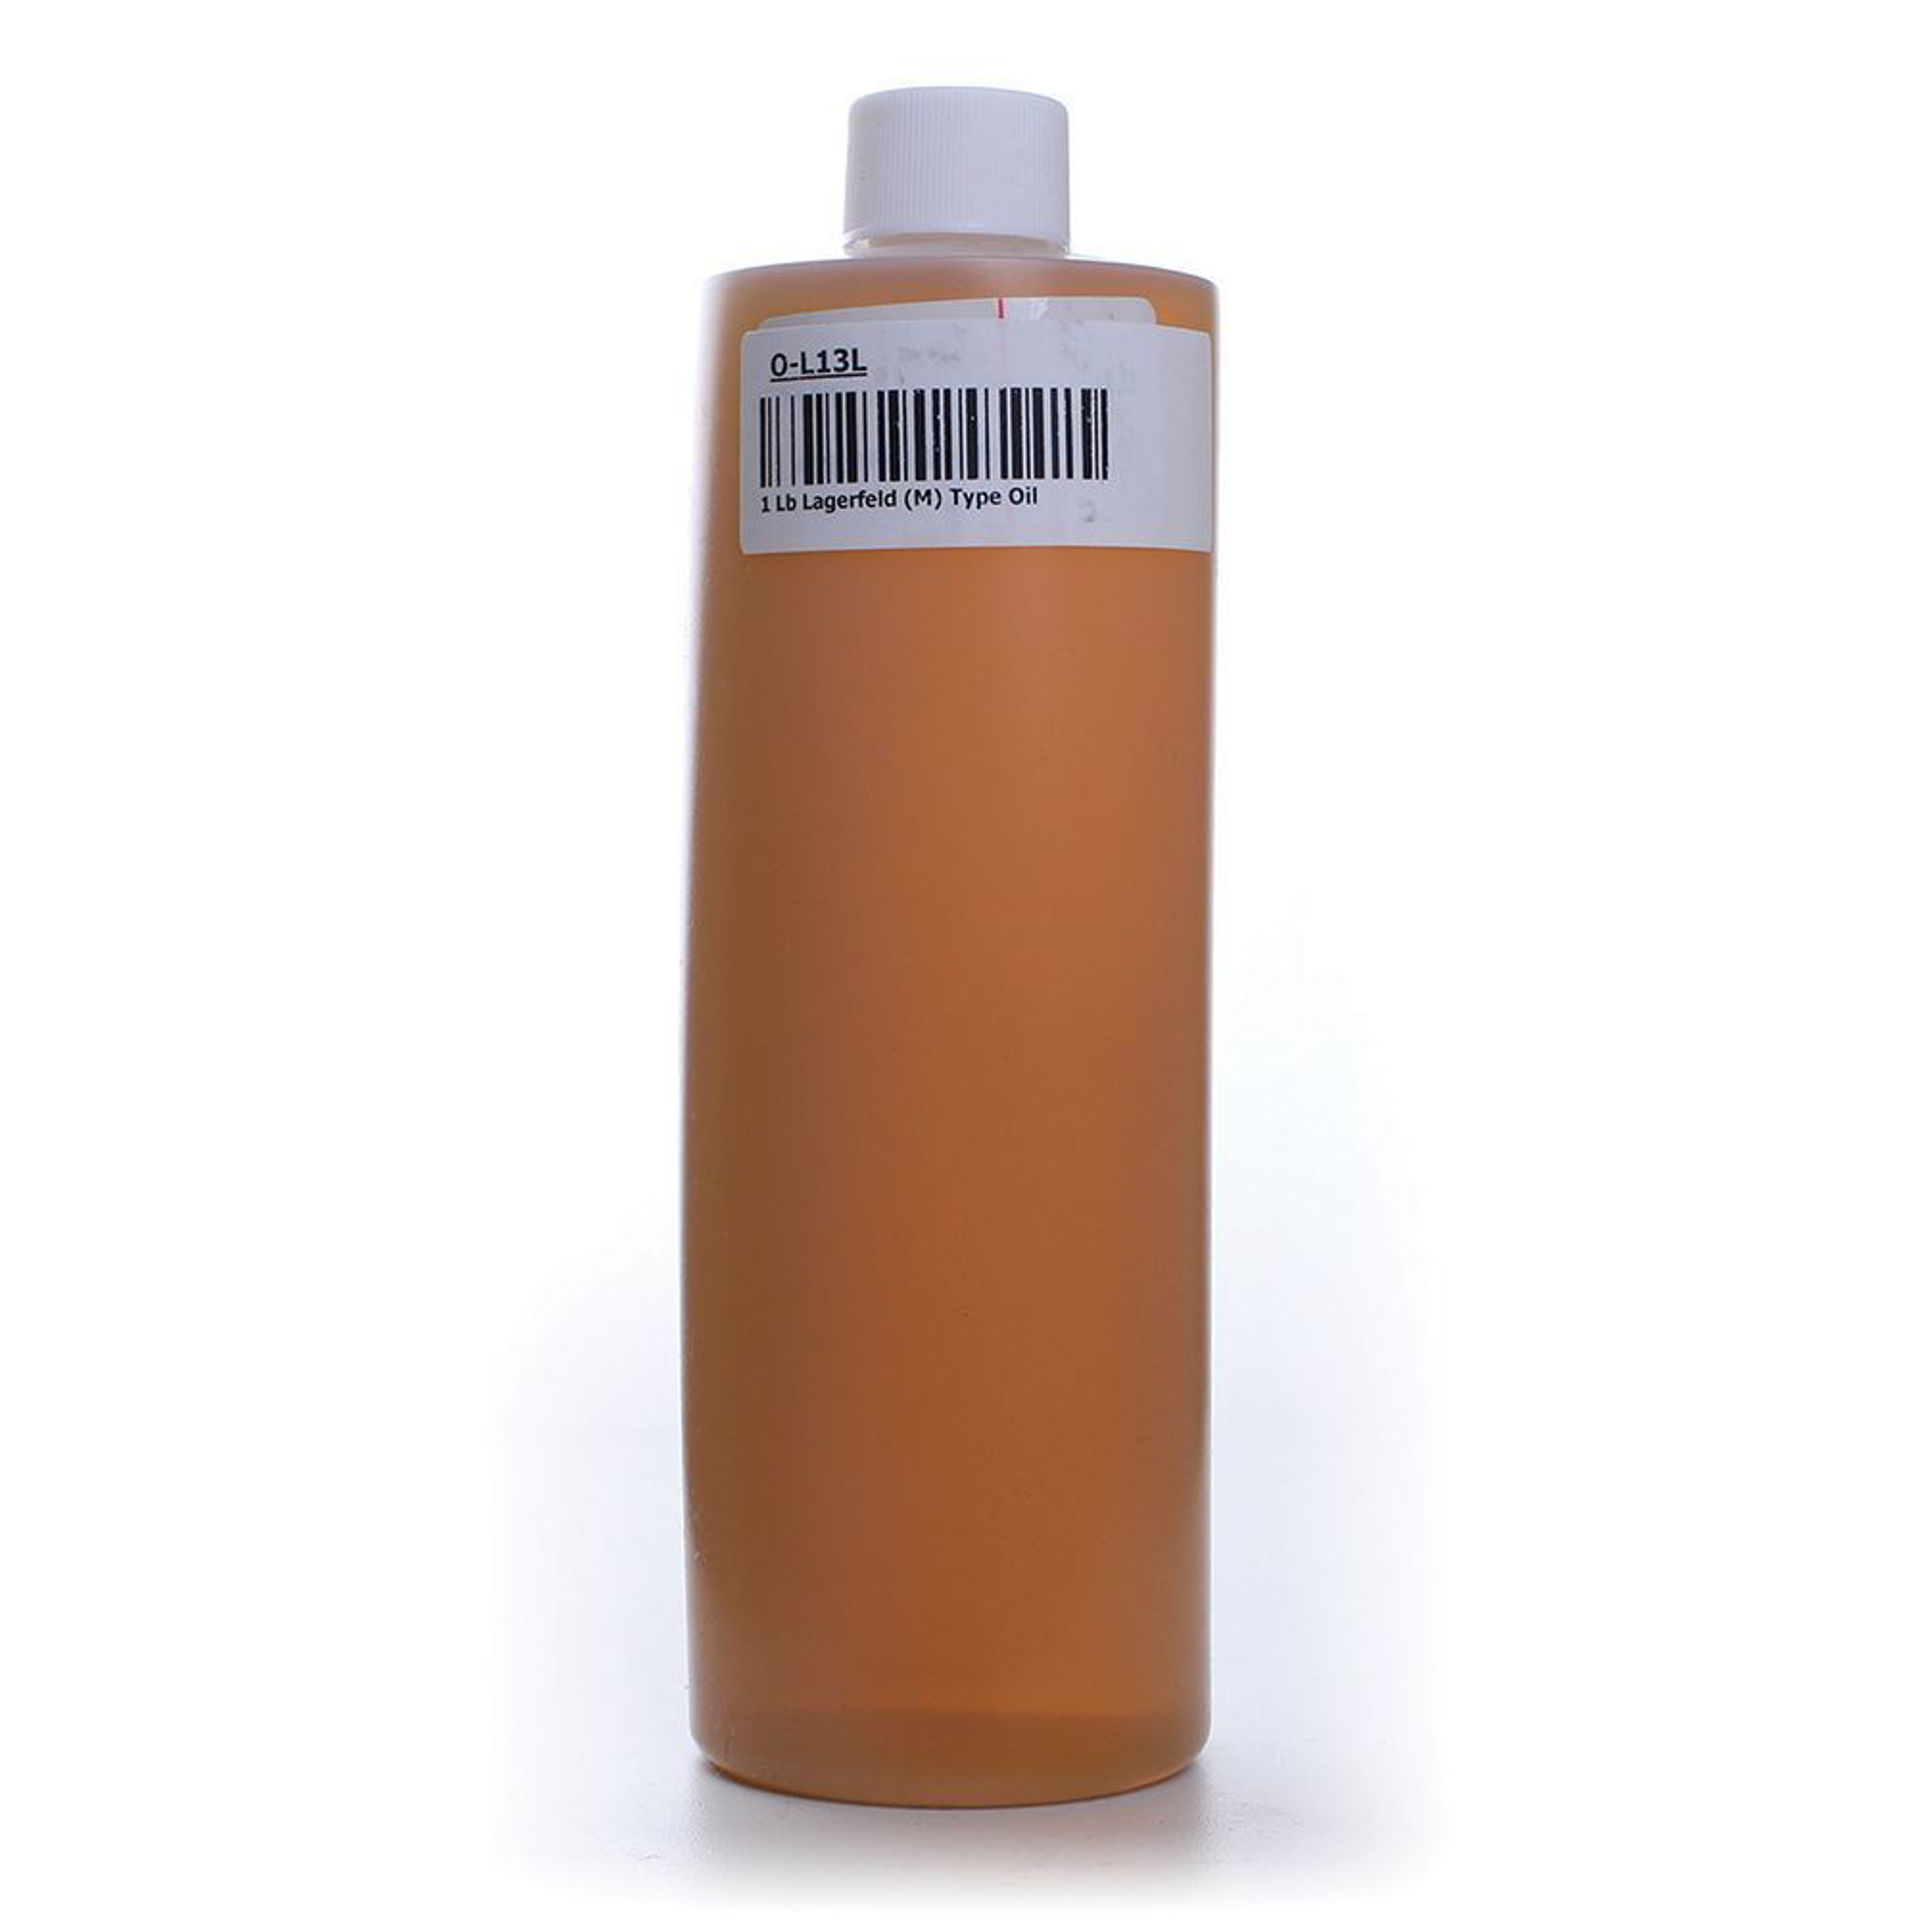 Picture of 1 Lb Lagerfeld (M) Type Oil